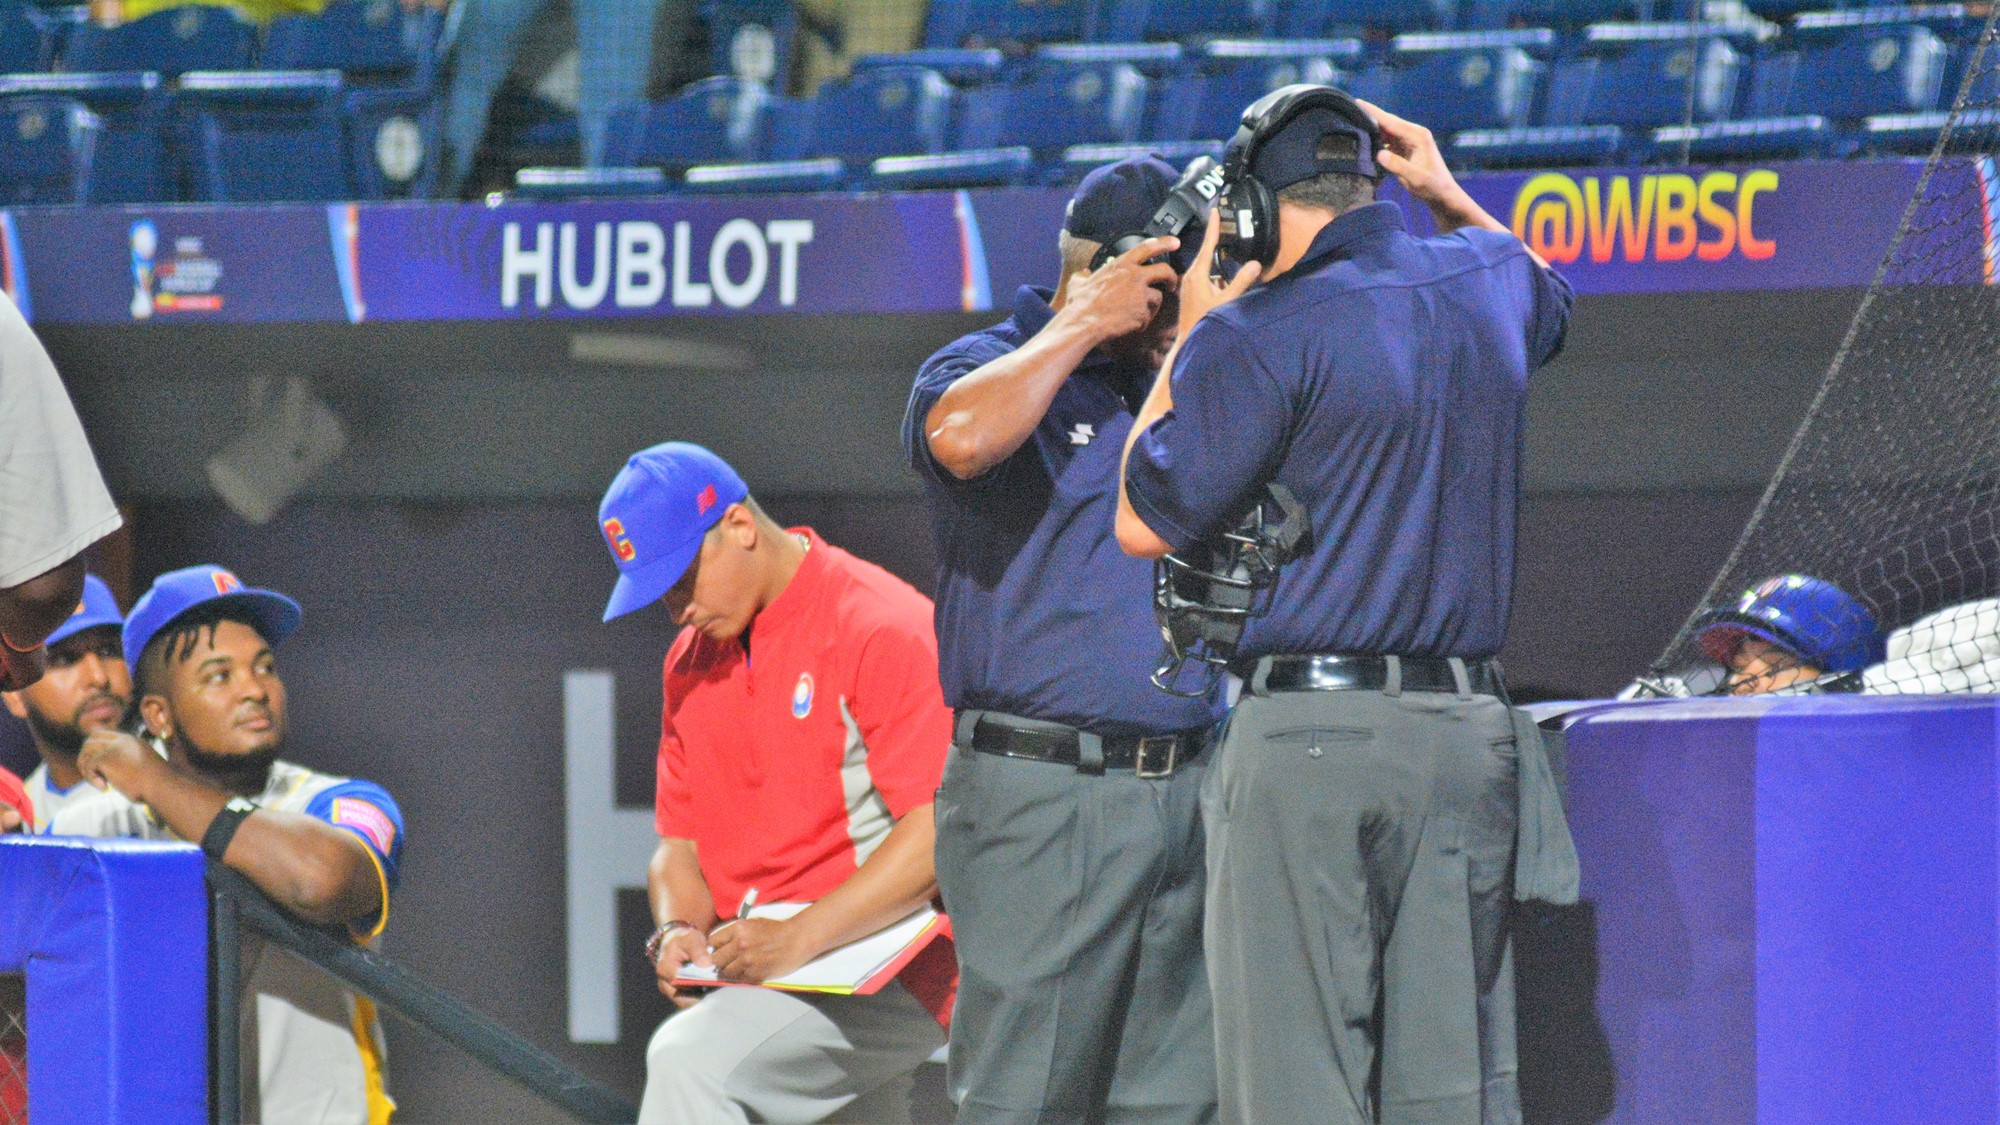 When Colombia lost the potential go ahead run at home plate, they challenged the call. But the umpire's decision survived instant replay